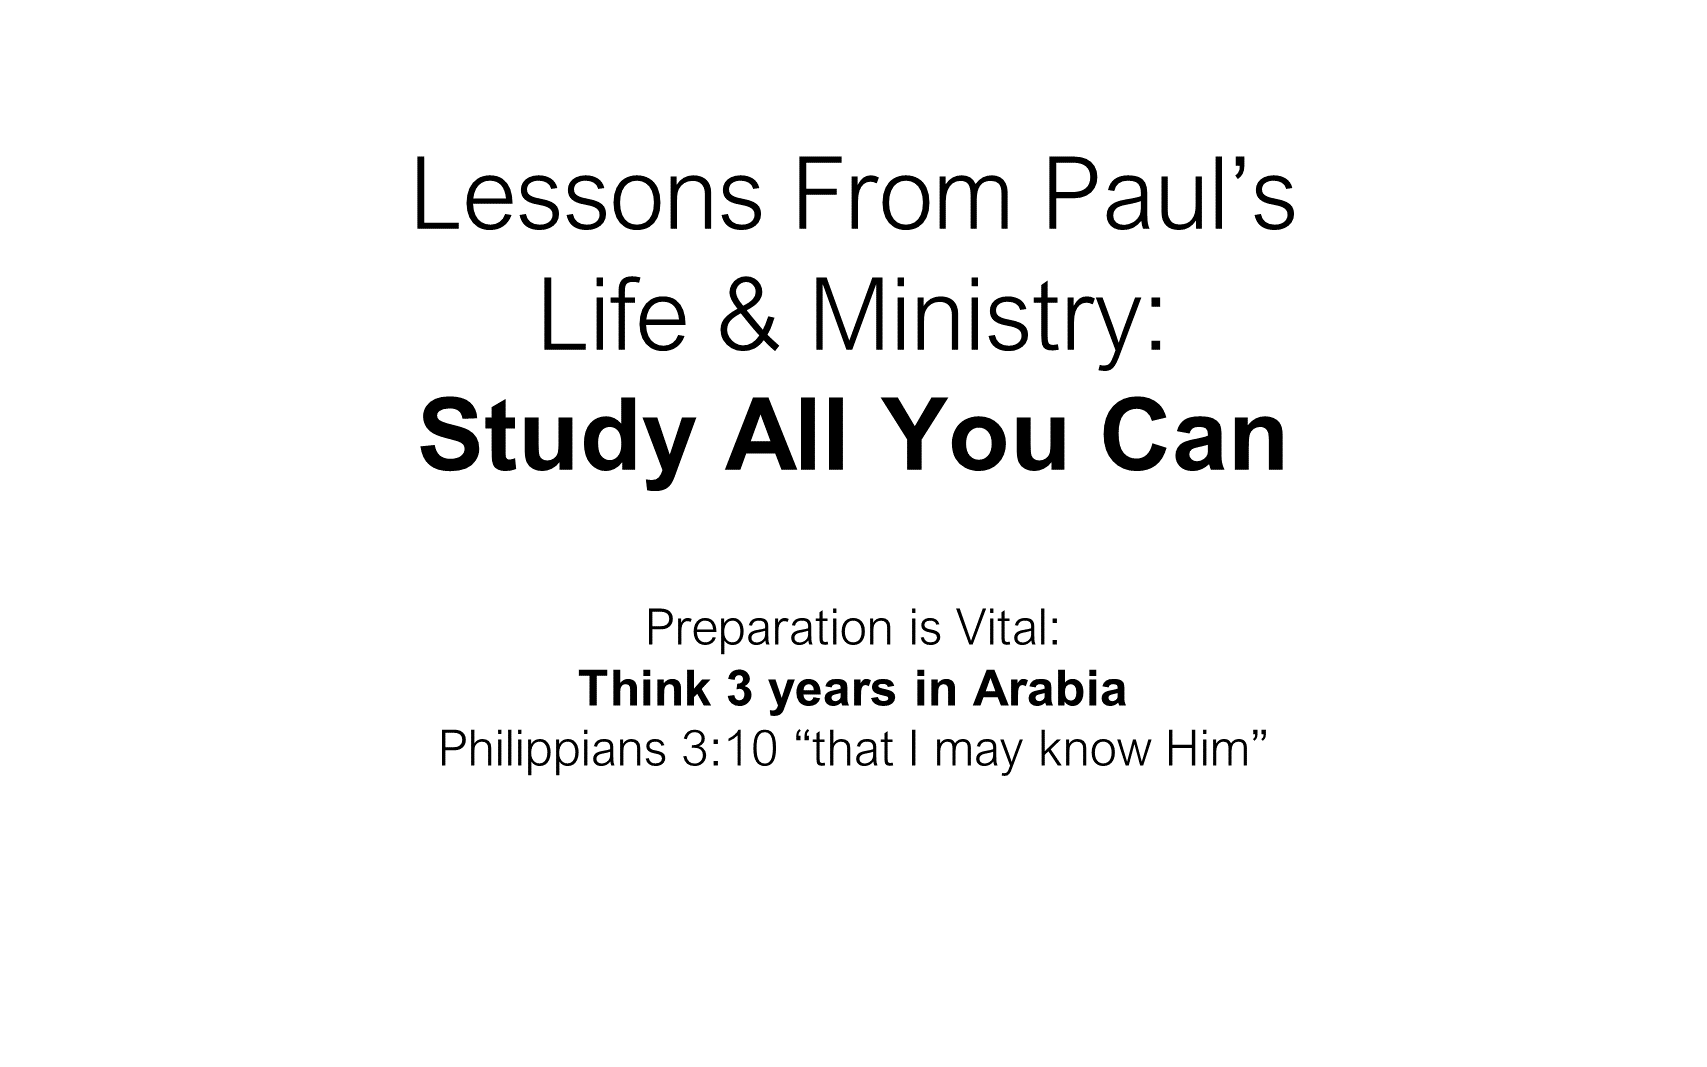 ESH-23 - The Discipline Of Disciple-Making - Paul - Used By God To Change The World (20)